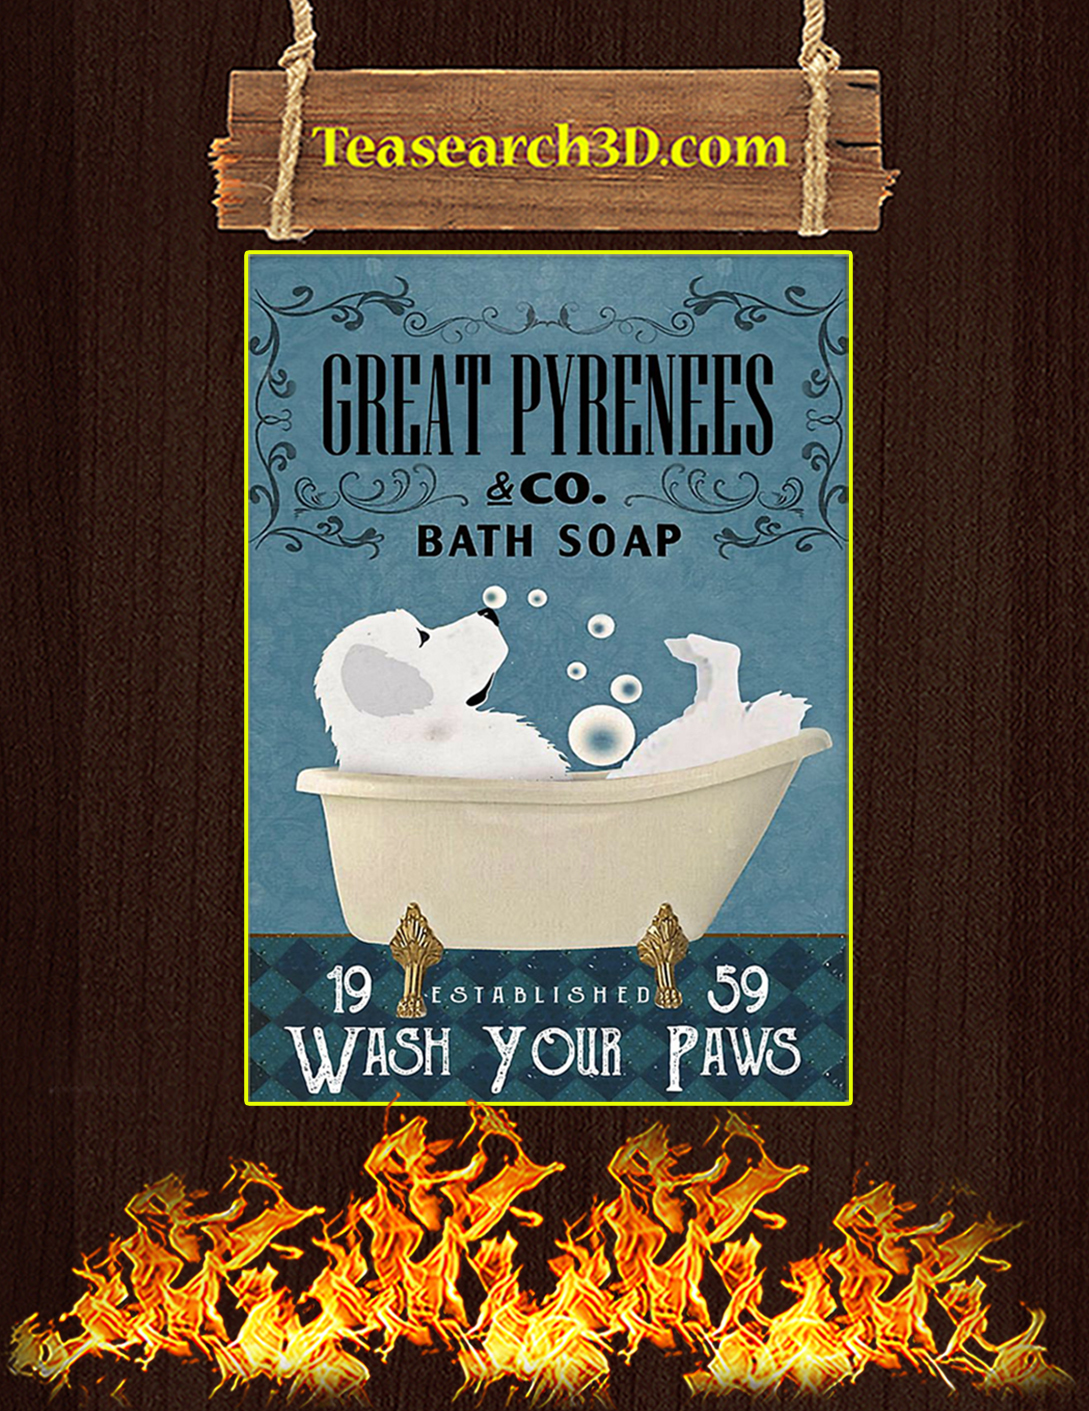 Bath Soap Company Great Pyrenees Poster A2